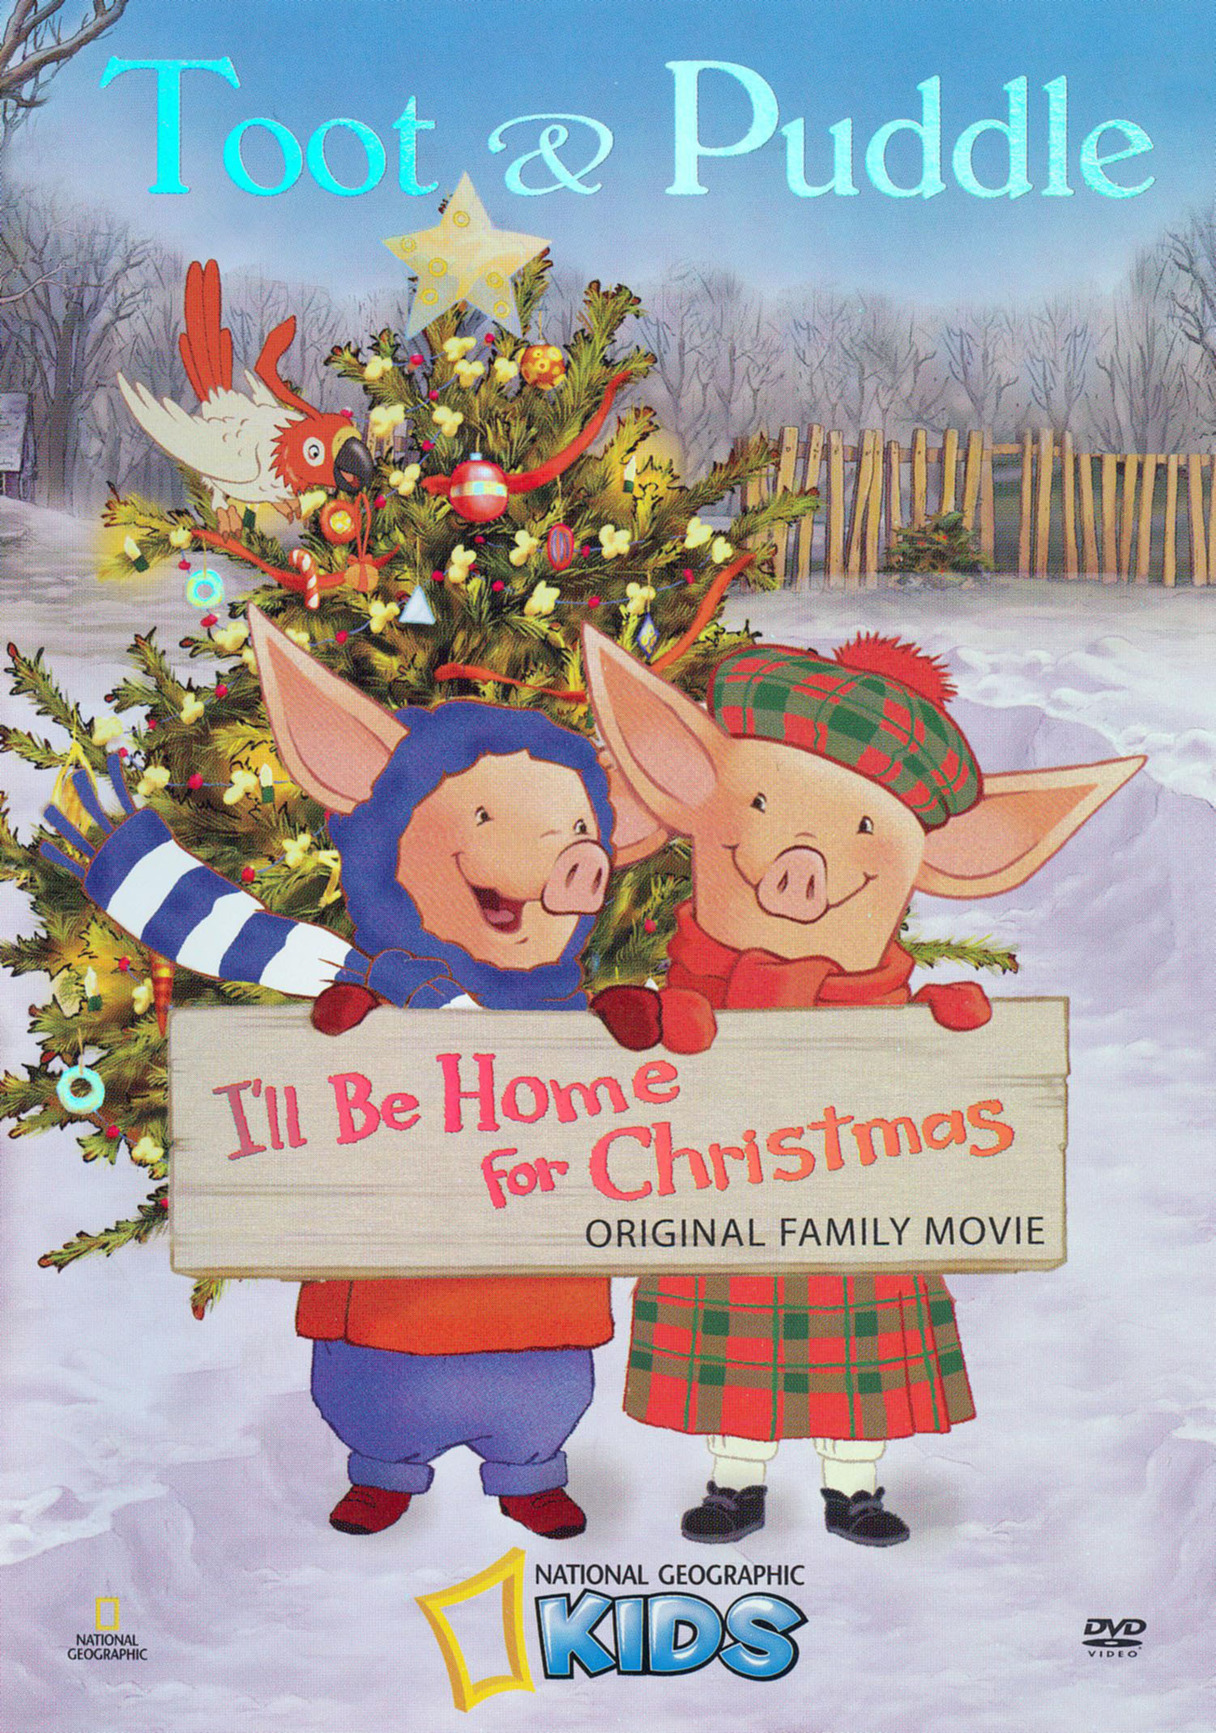 Ill Be Home For Christmas Dvd.Toot Puddle I Ll Be Home For Christmas Christmas